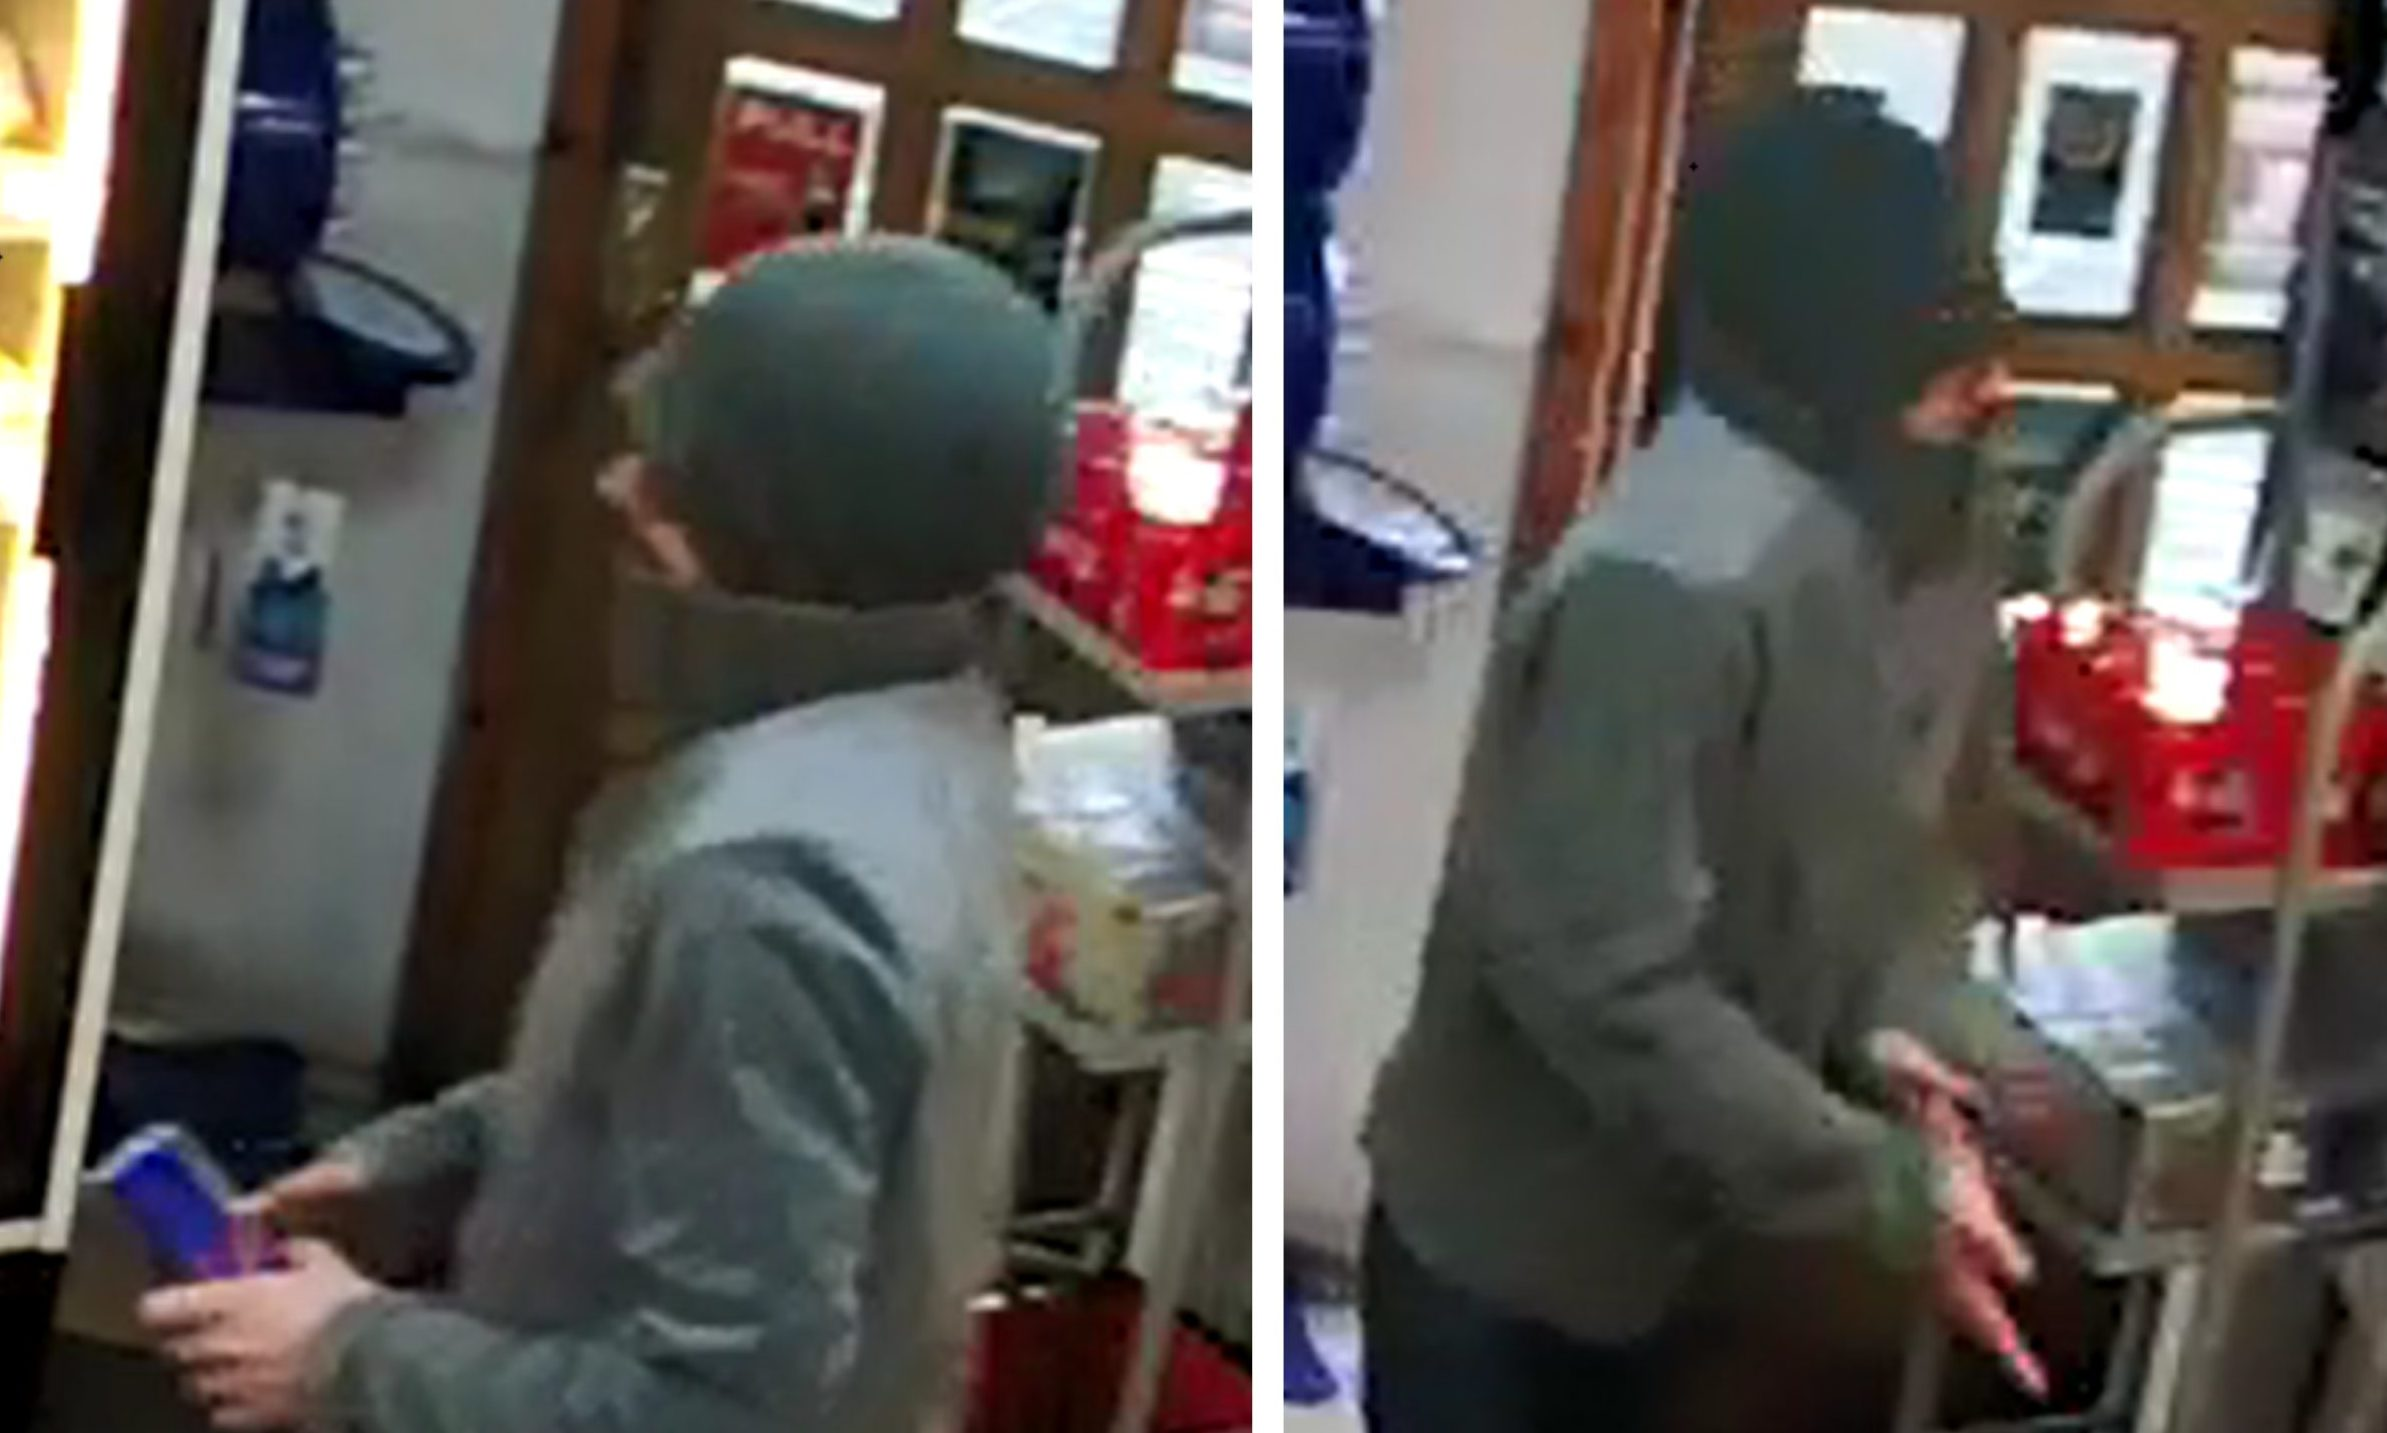 This man is being sought by police in Dundee.